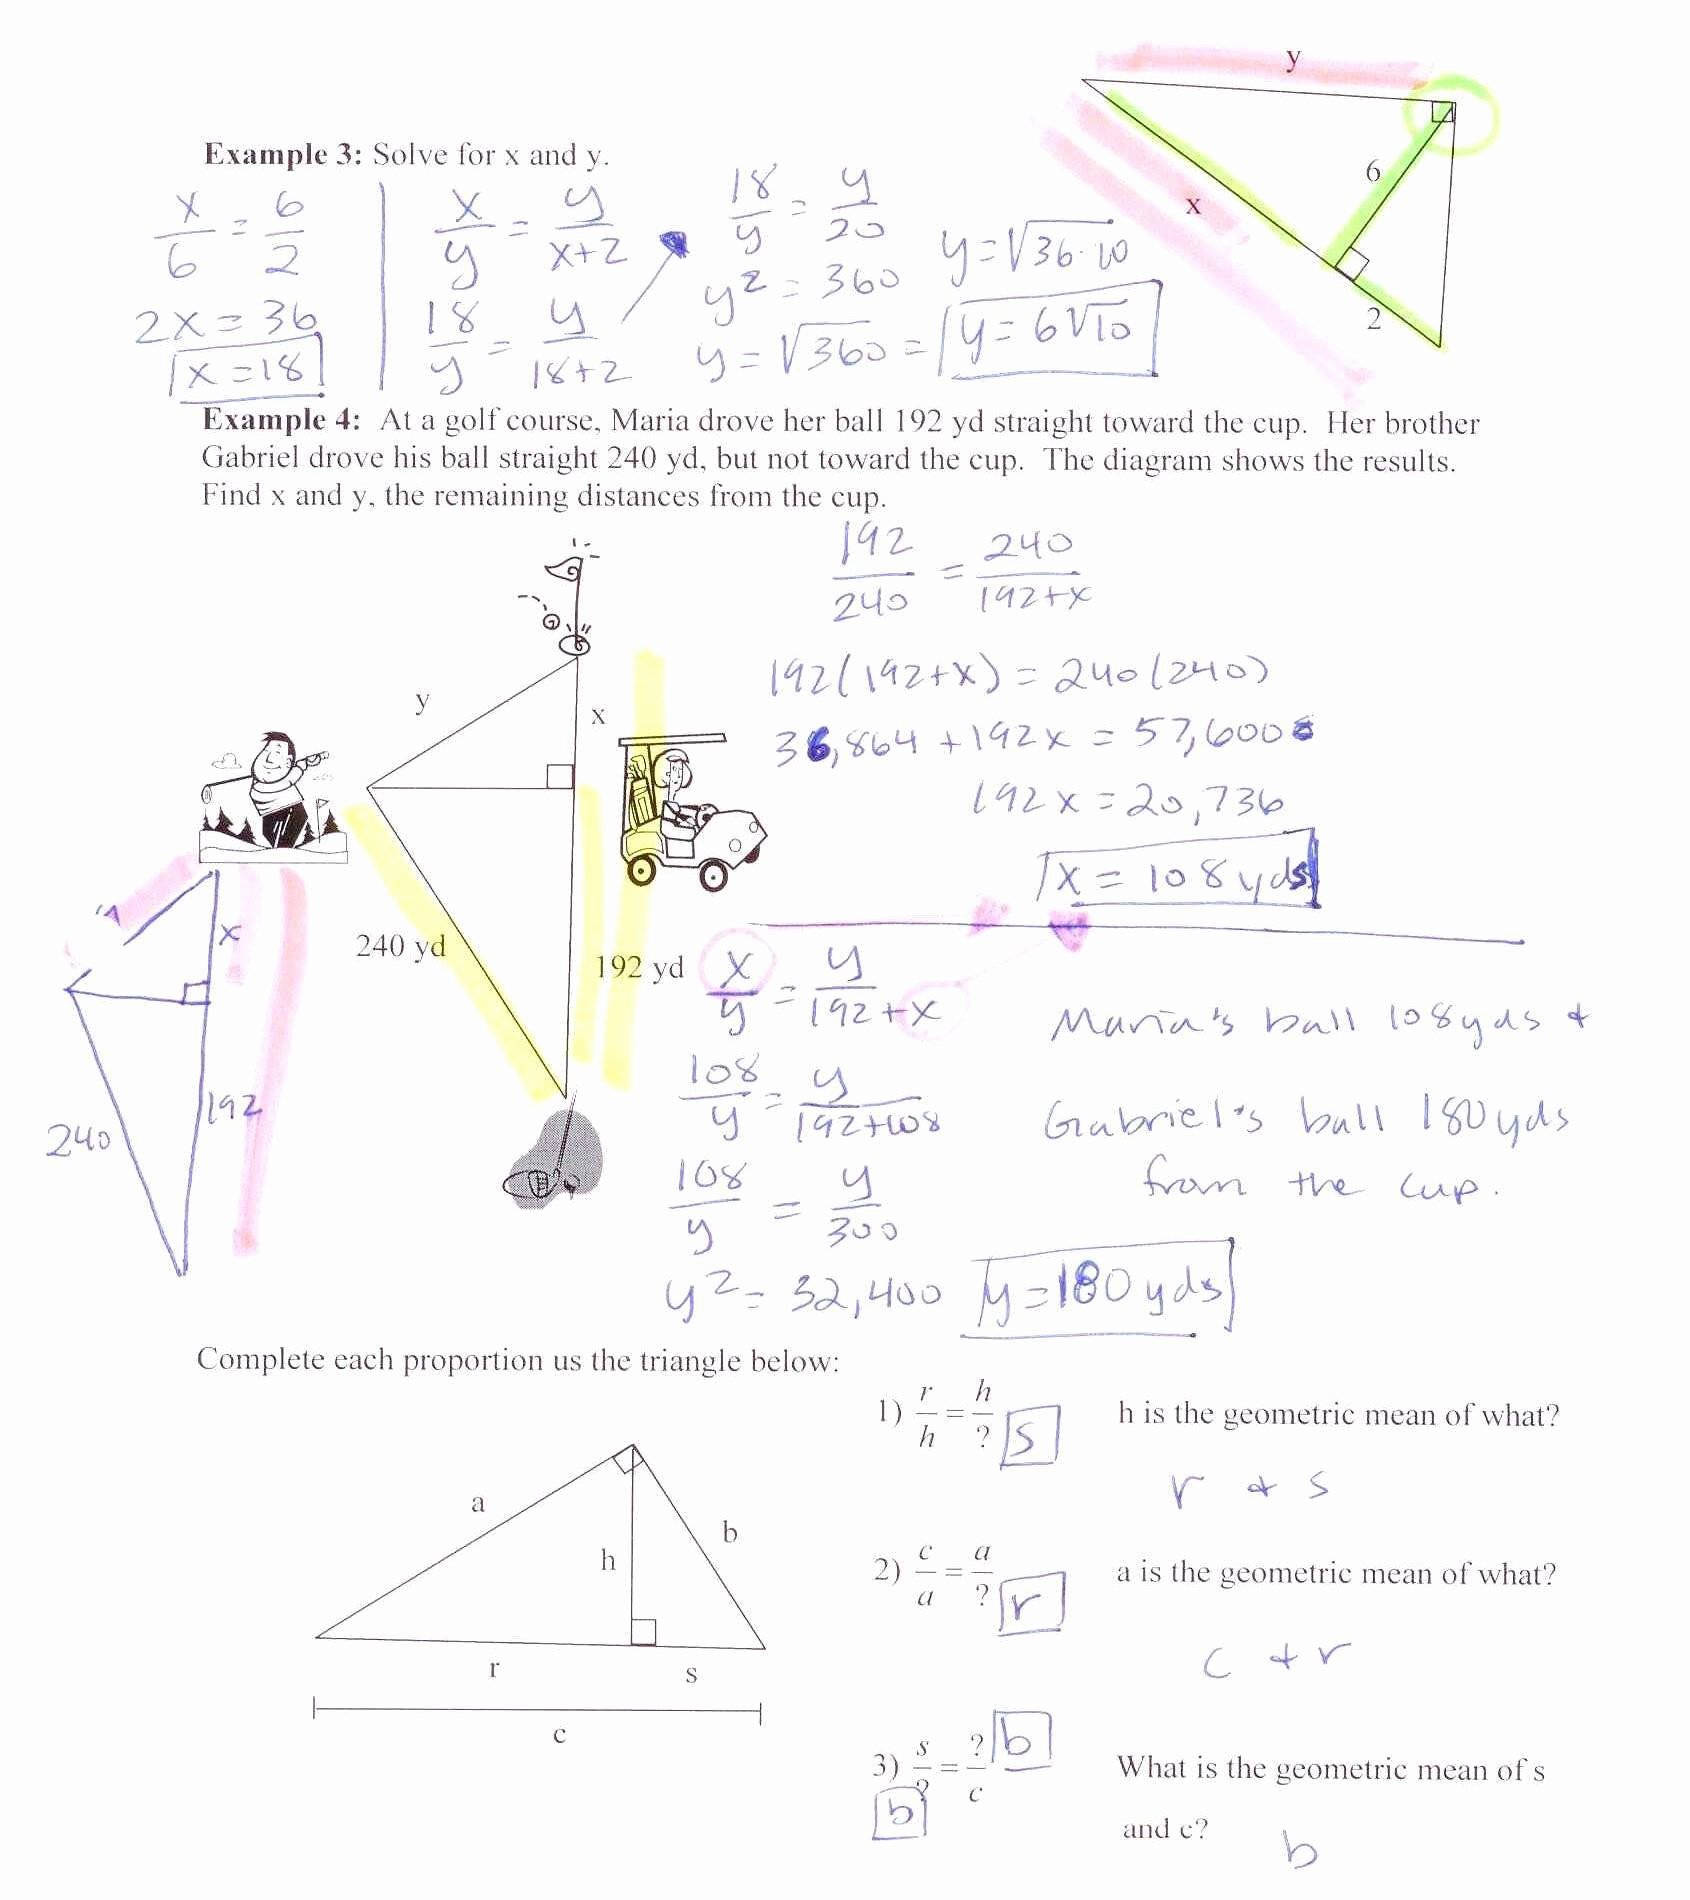 Congruent Triangles Worksheet with Answers Luxury Geometry Worksheet Congruent Triangles Sss and Sas Answers